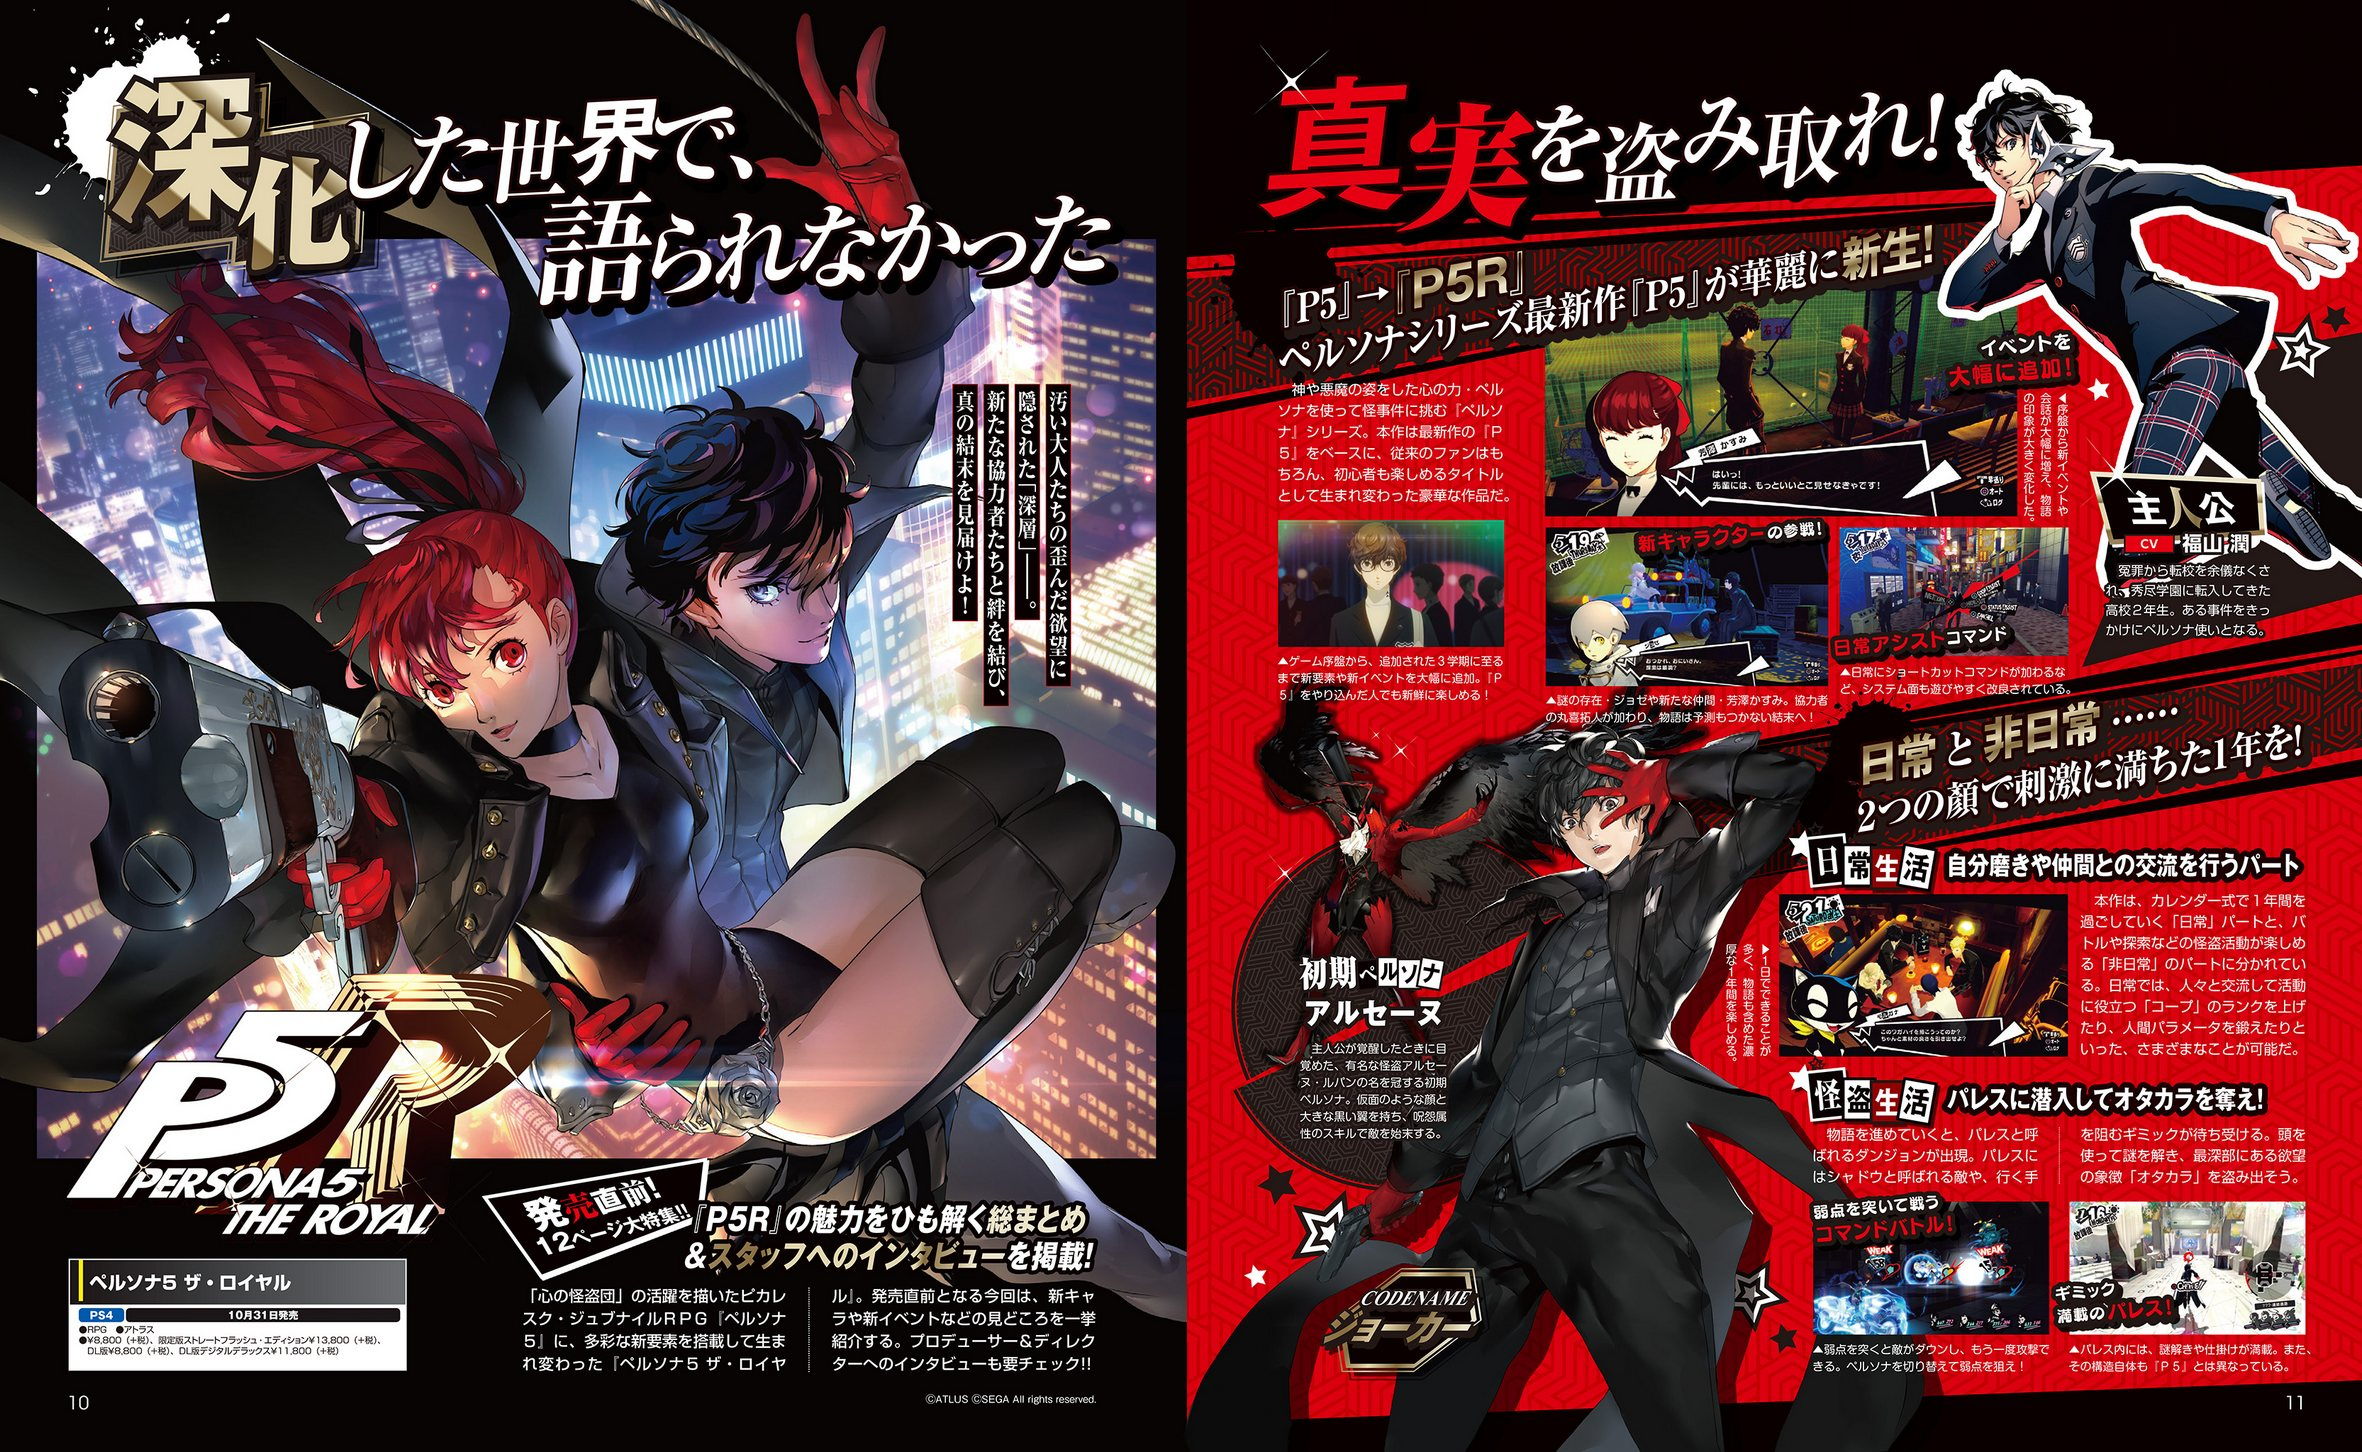 Persona 5 Royal  Video Game Poster  13x19 inches